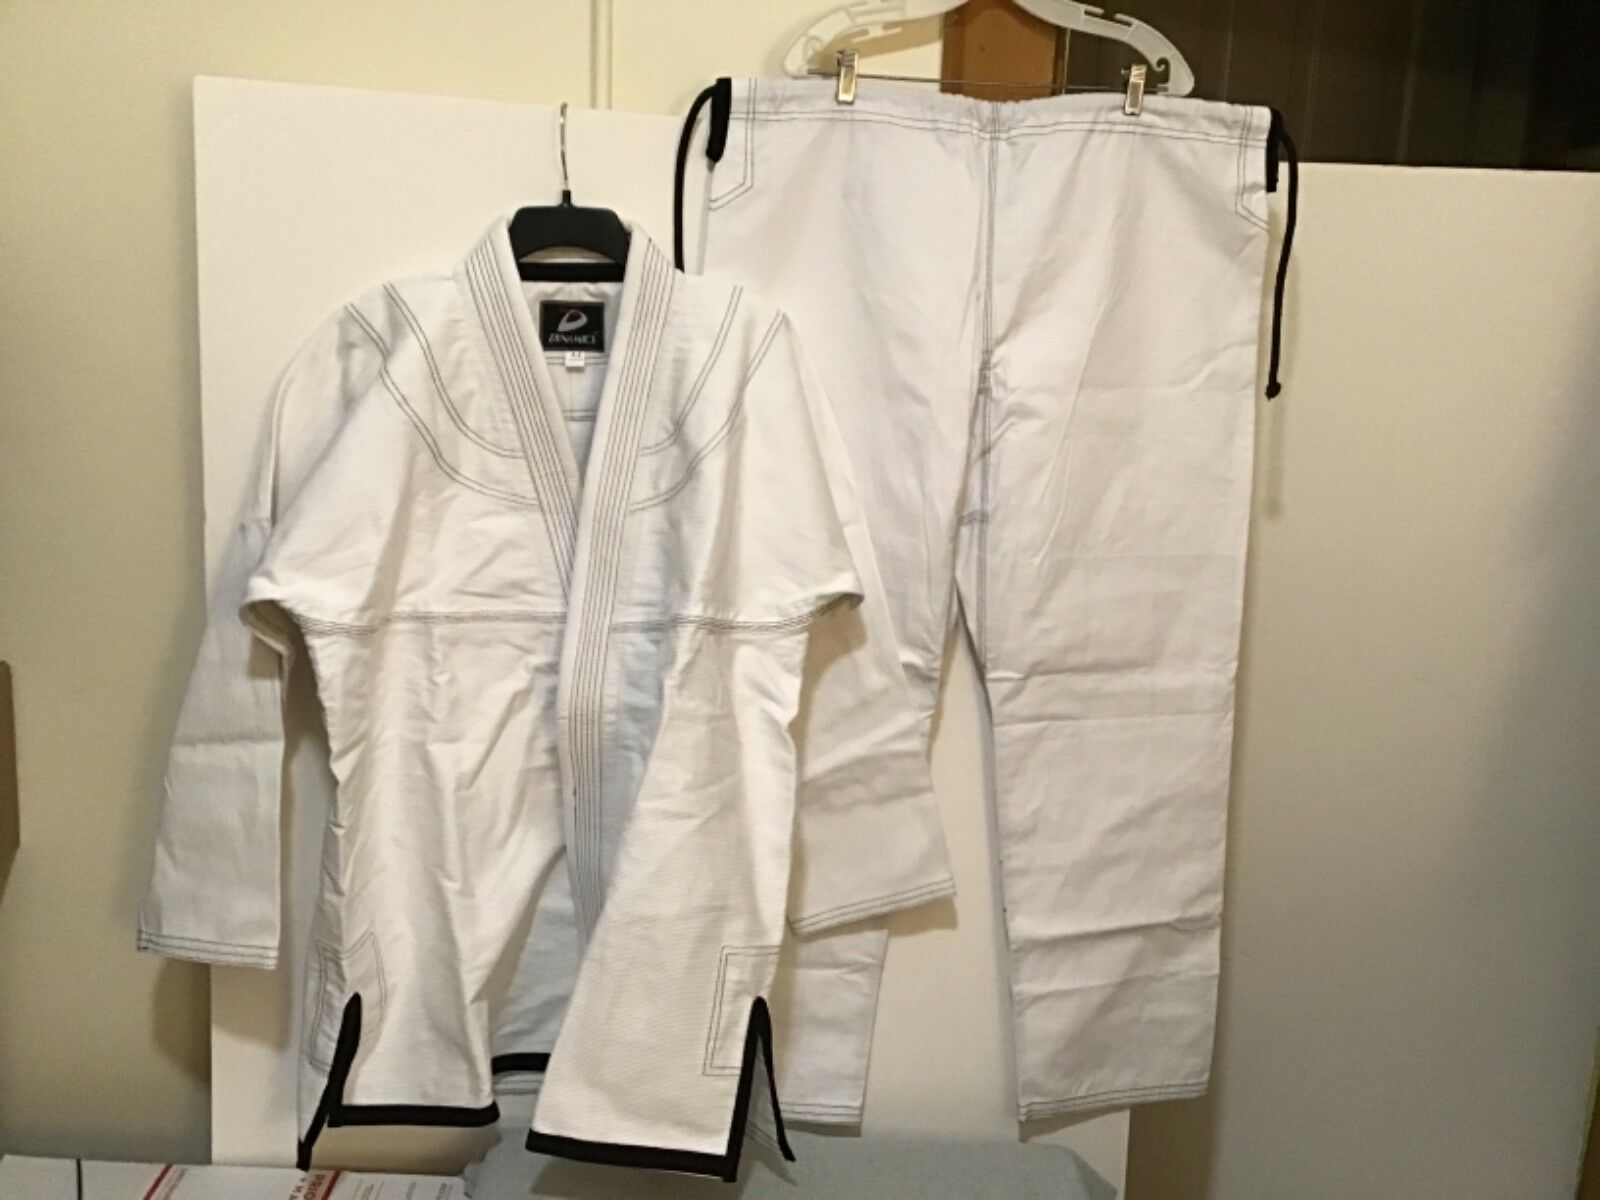 Dynamics White A-4 Martial Arts Uniform 100% Cotton Top & Pants NEW ( CB40-12)